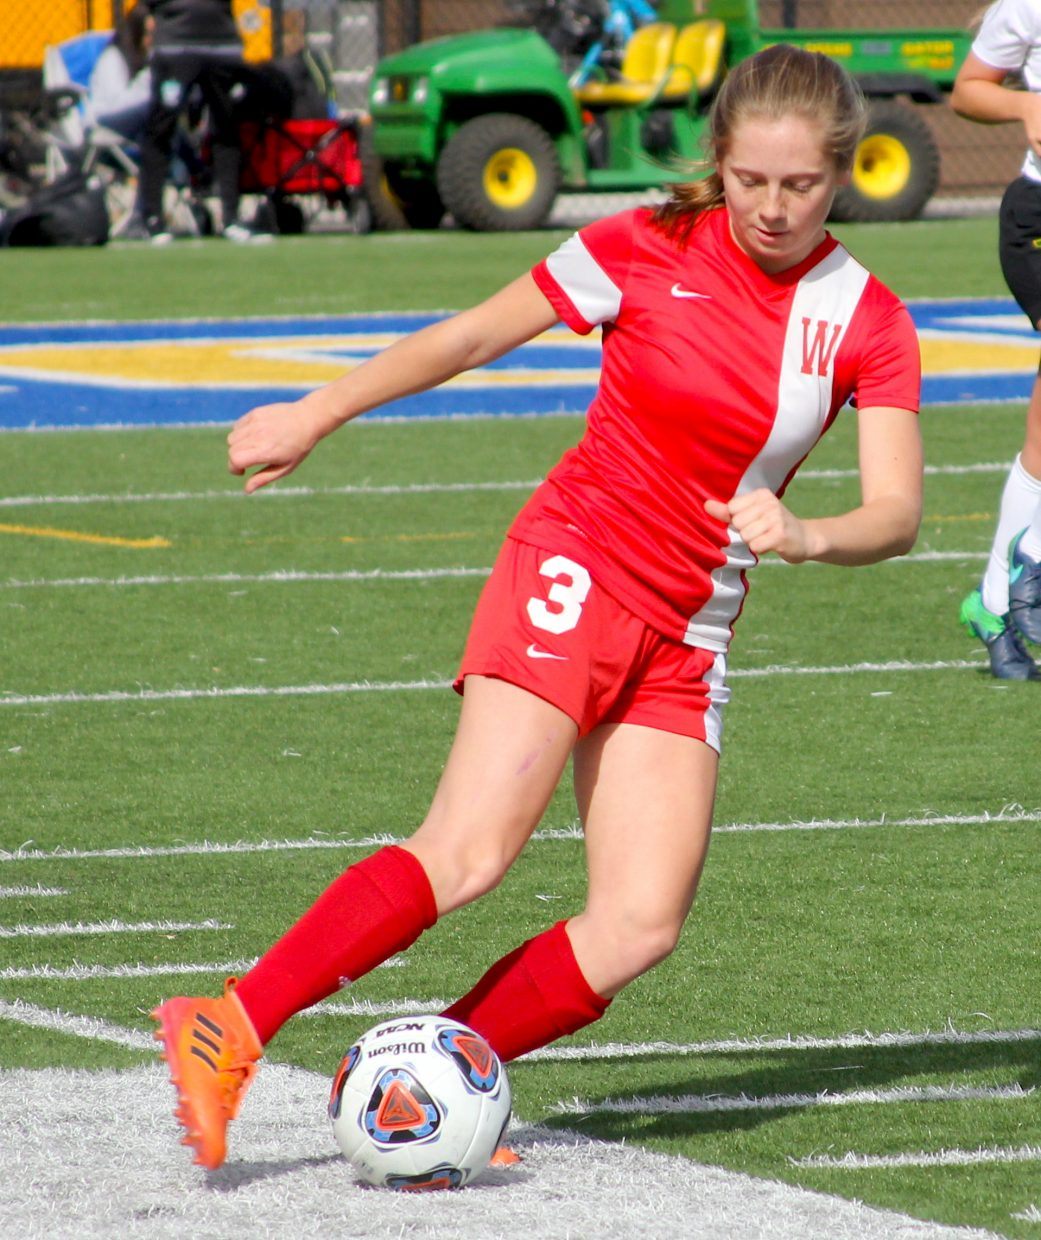 Whittell sophomore Ava Campbell uses fancy footwork to get past a defender.